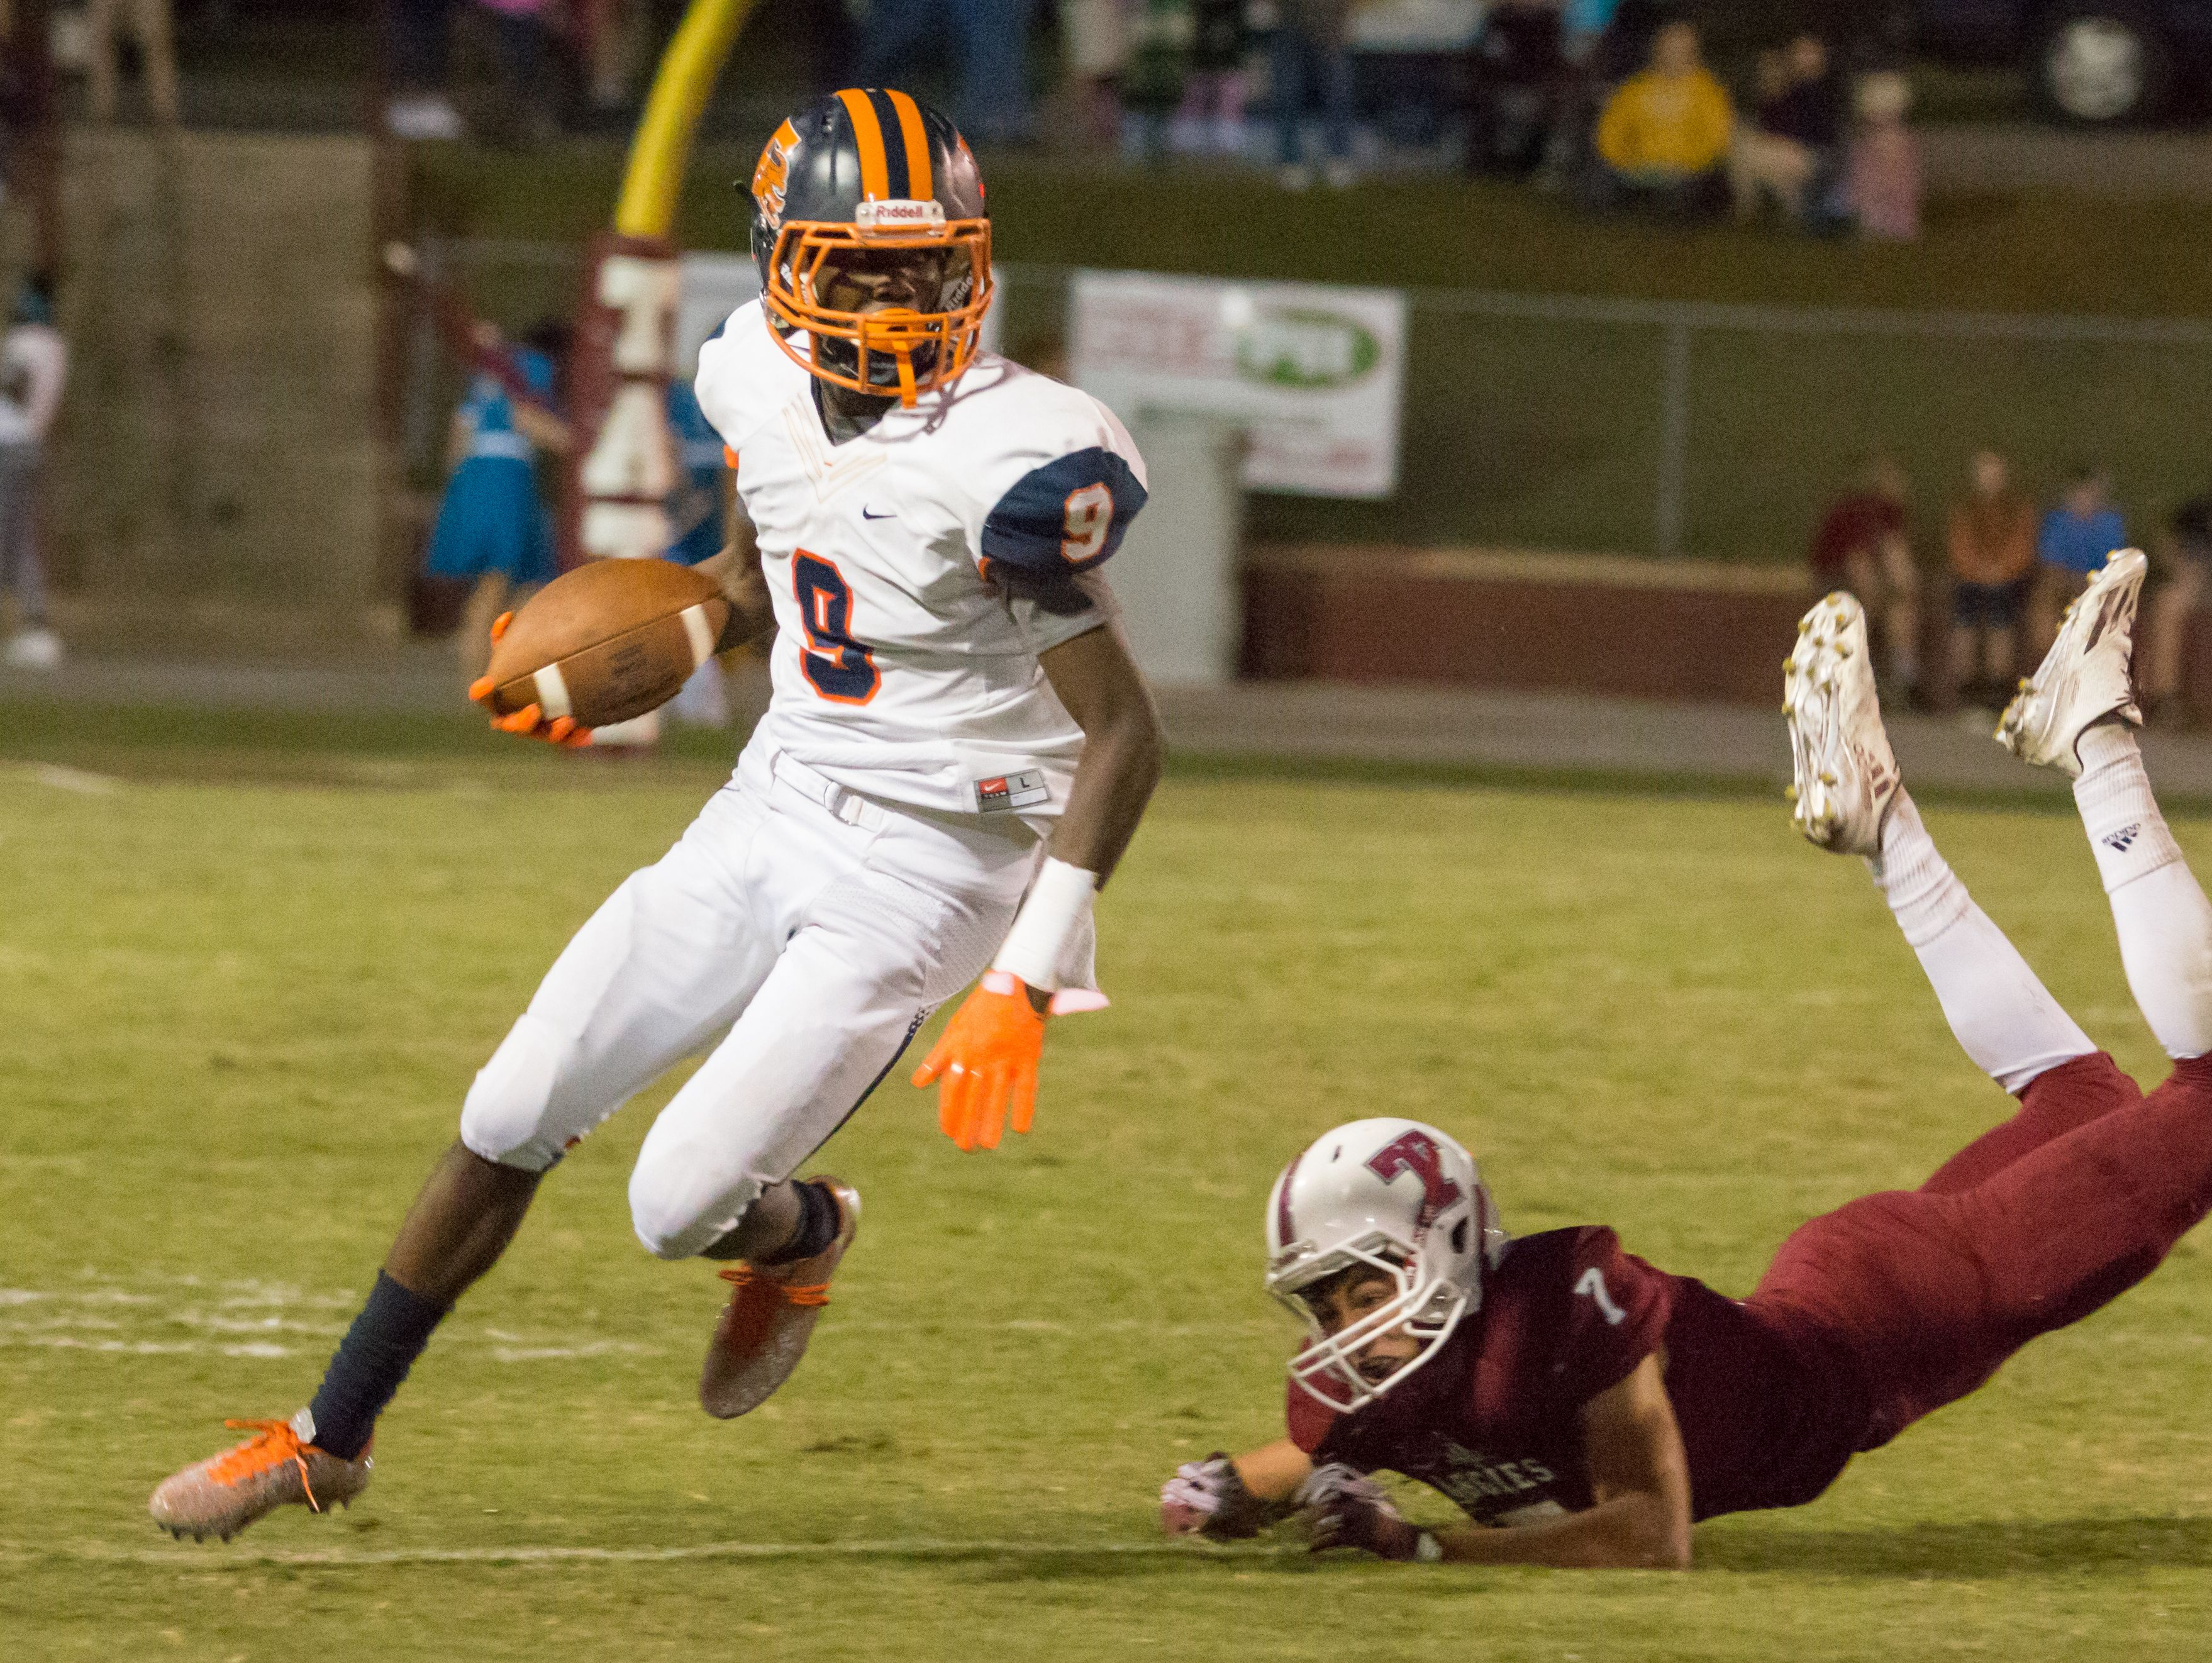 Escambia running back Ladarius Harris (9) gets past Tate's Patrick Palmer (7) after making him miss the tackle Friday night at Tate High School.